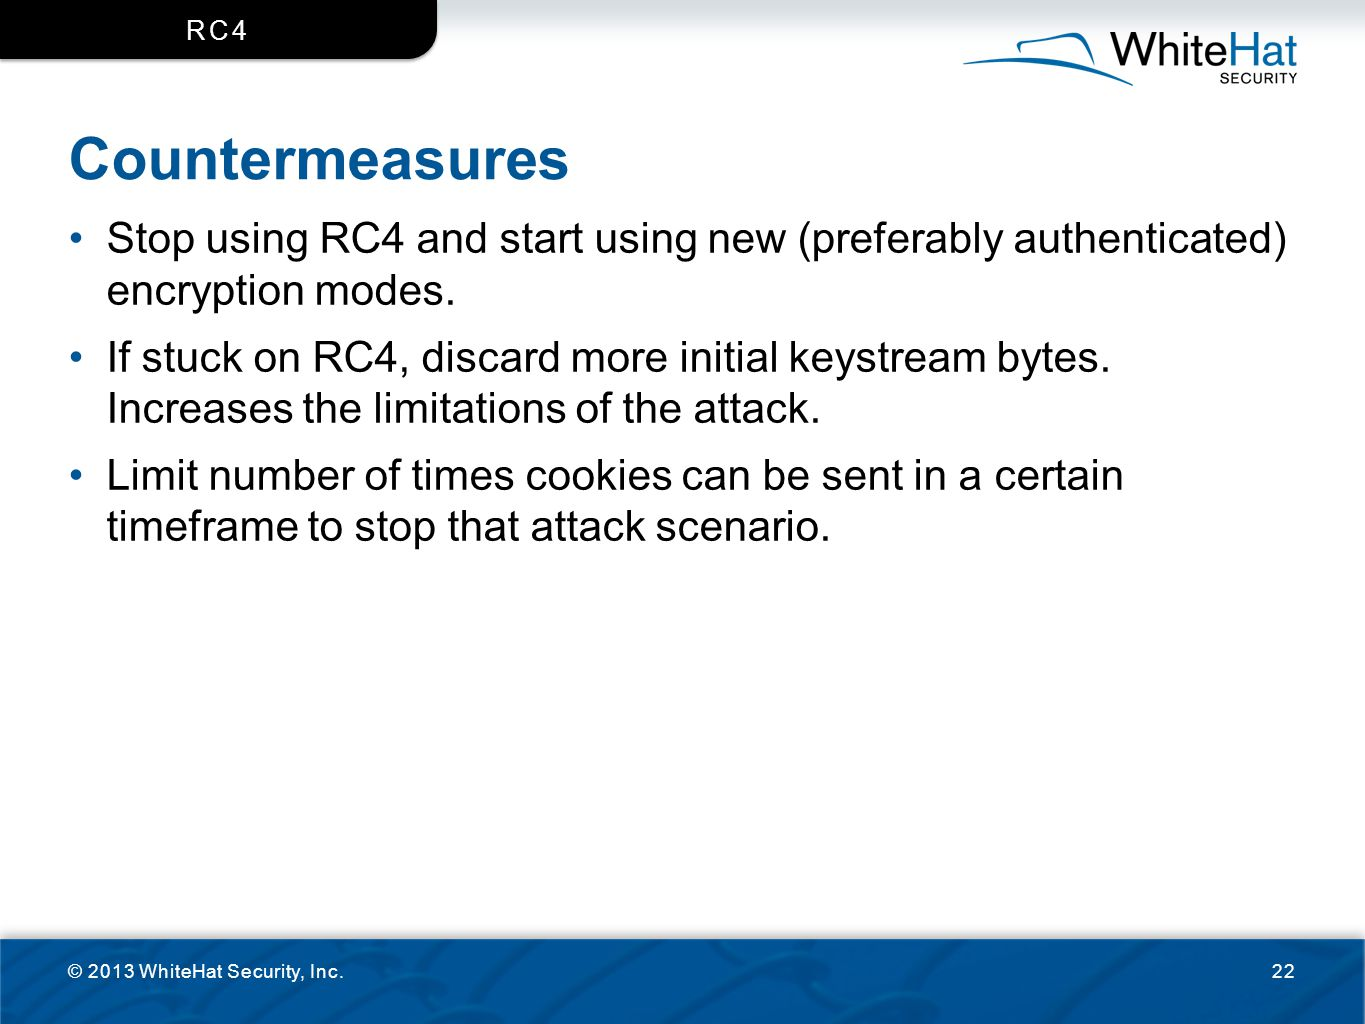 rc4 Countermeasures. Stop using RC4 and start using new (preferably authenticated) encryption modes.